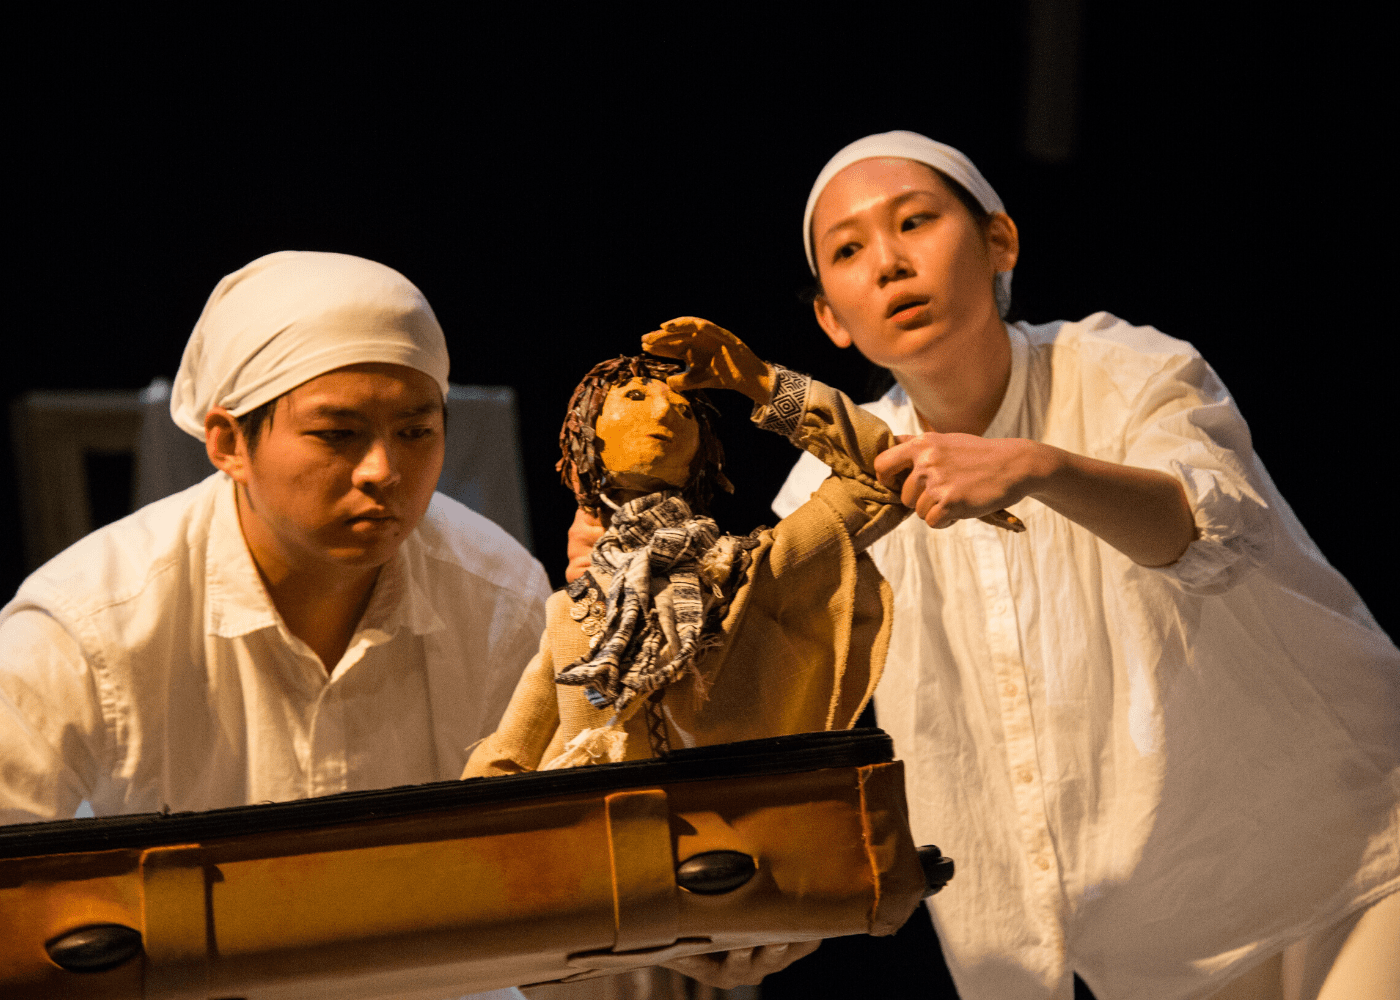 Bring the kids to Gullinkambi, a heartwarming tale of love and courage at the Esplanade this February!